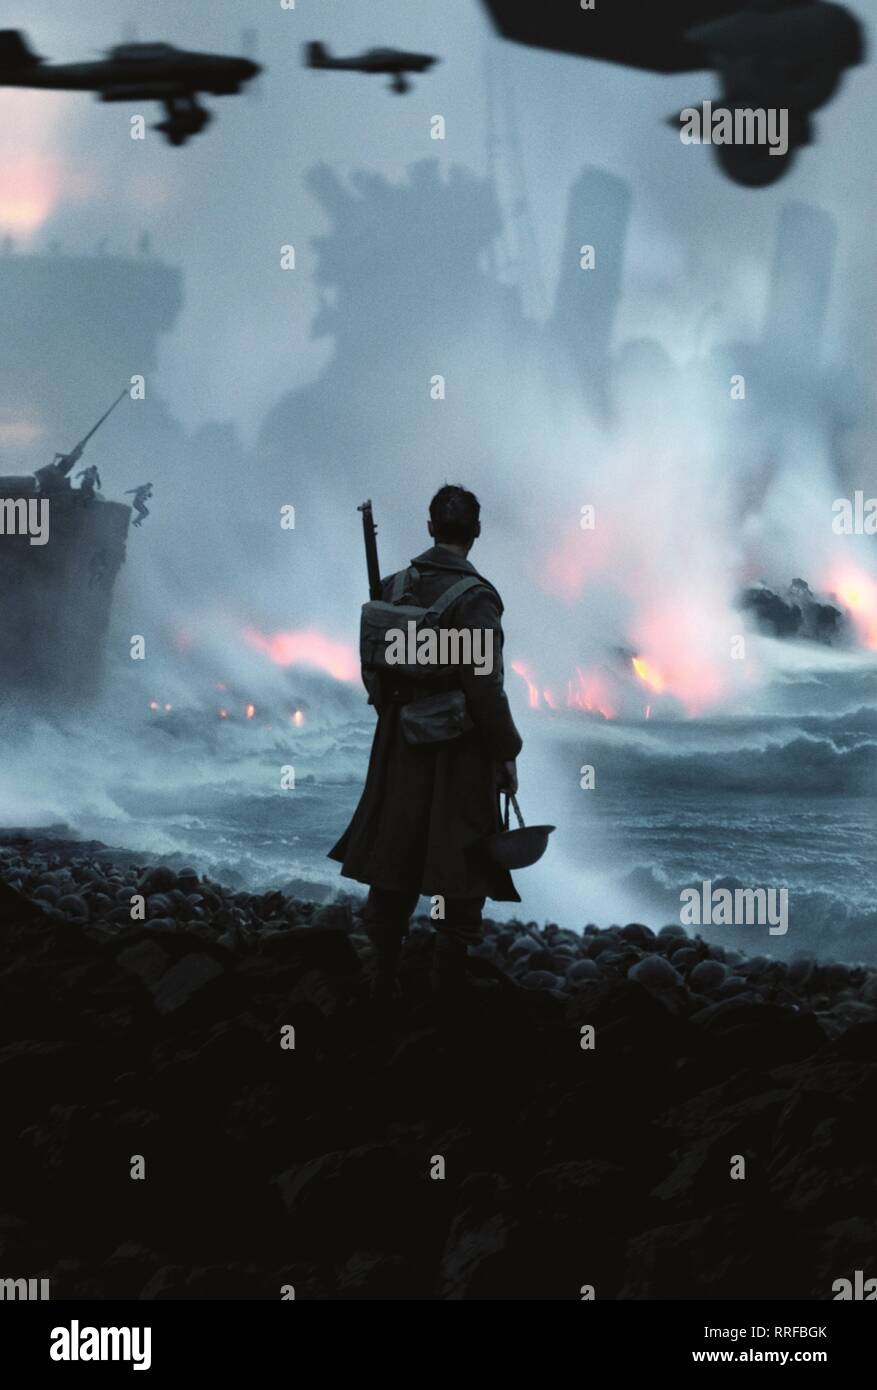 DUNKIRK, BATTLE SCENE, 2017 - Stock Image